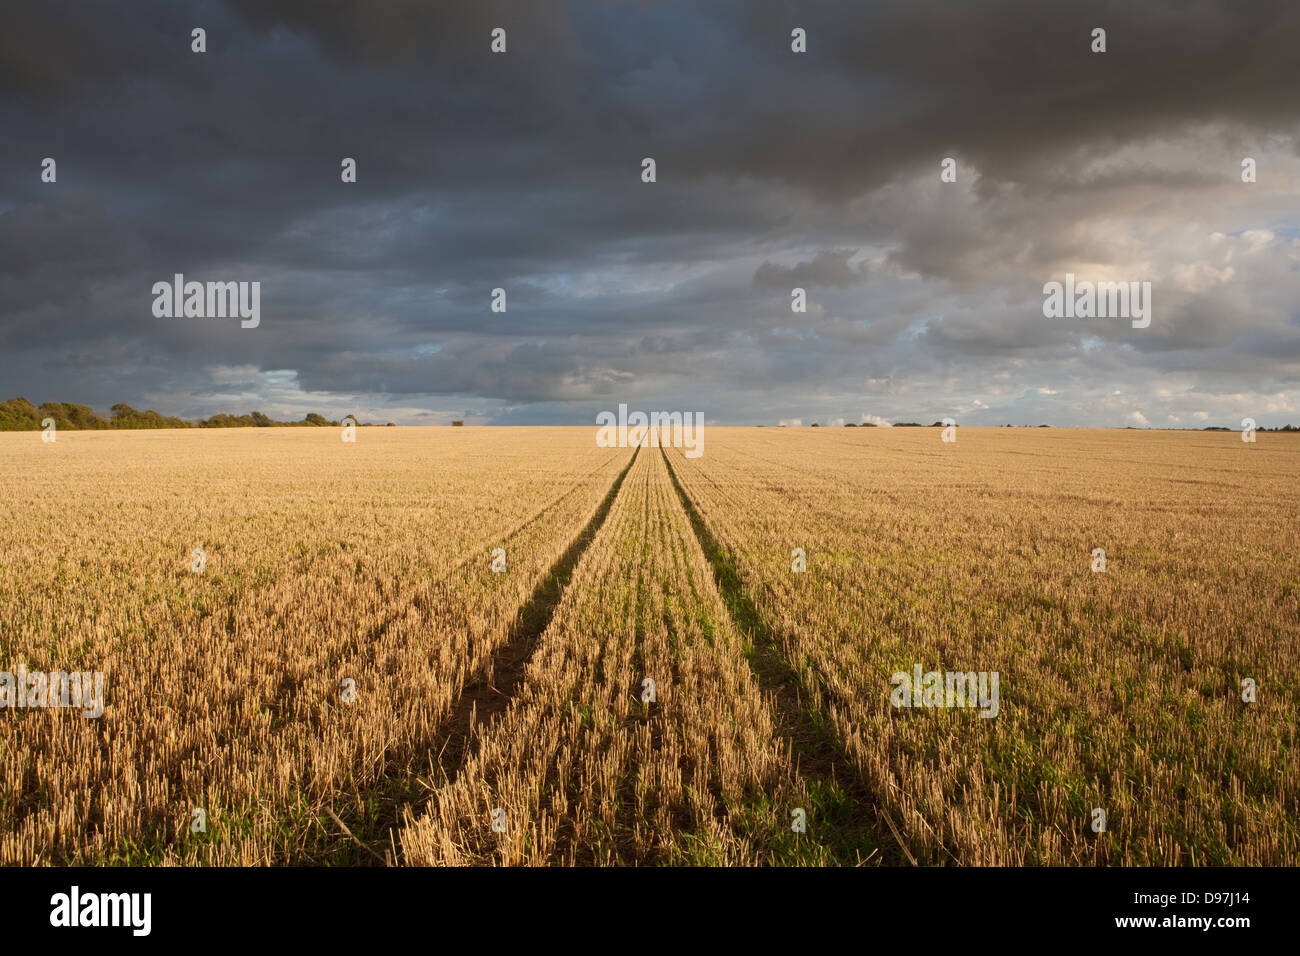 ENGLAND; NORFOLK; THORNHAM; PERSPECTIVE; LINES; SUNLIGHT; FIELD - Stock Image